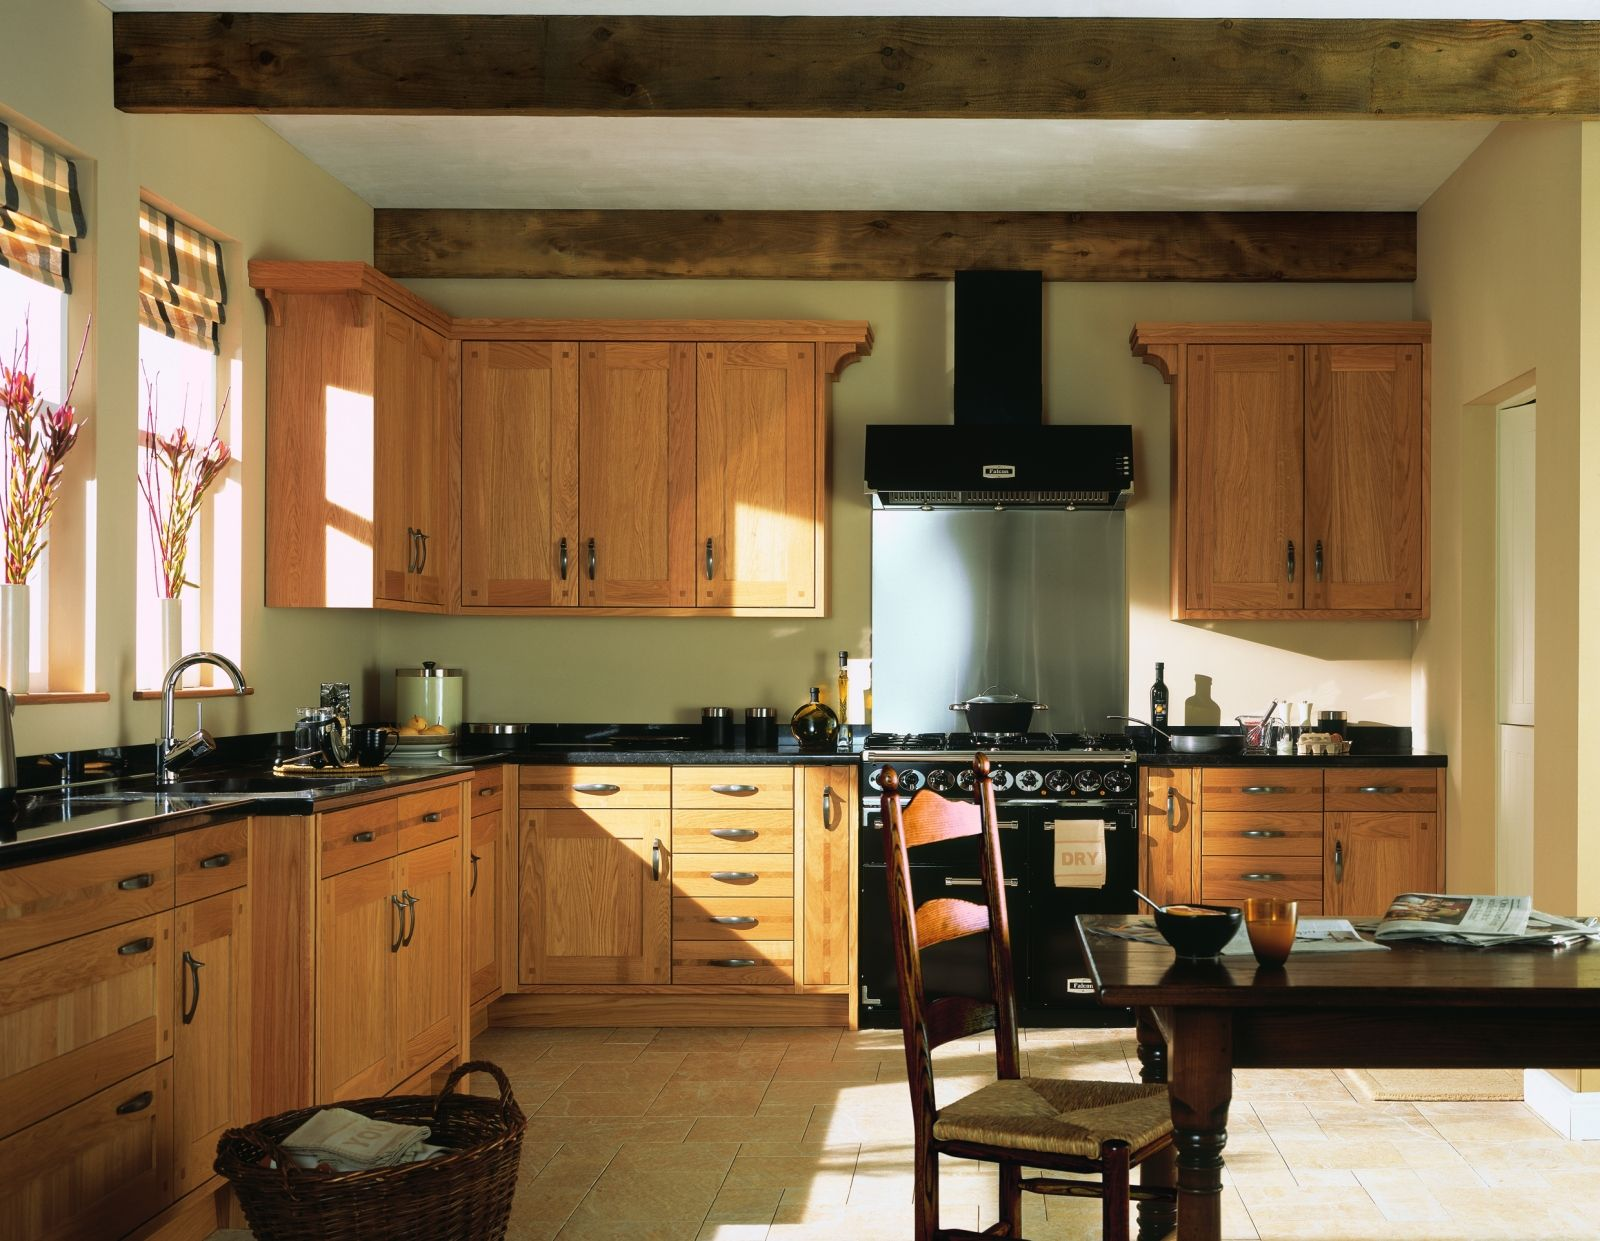 oak kitchen ideas -@janice reed here is an oak kitchen with your